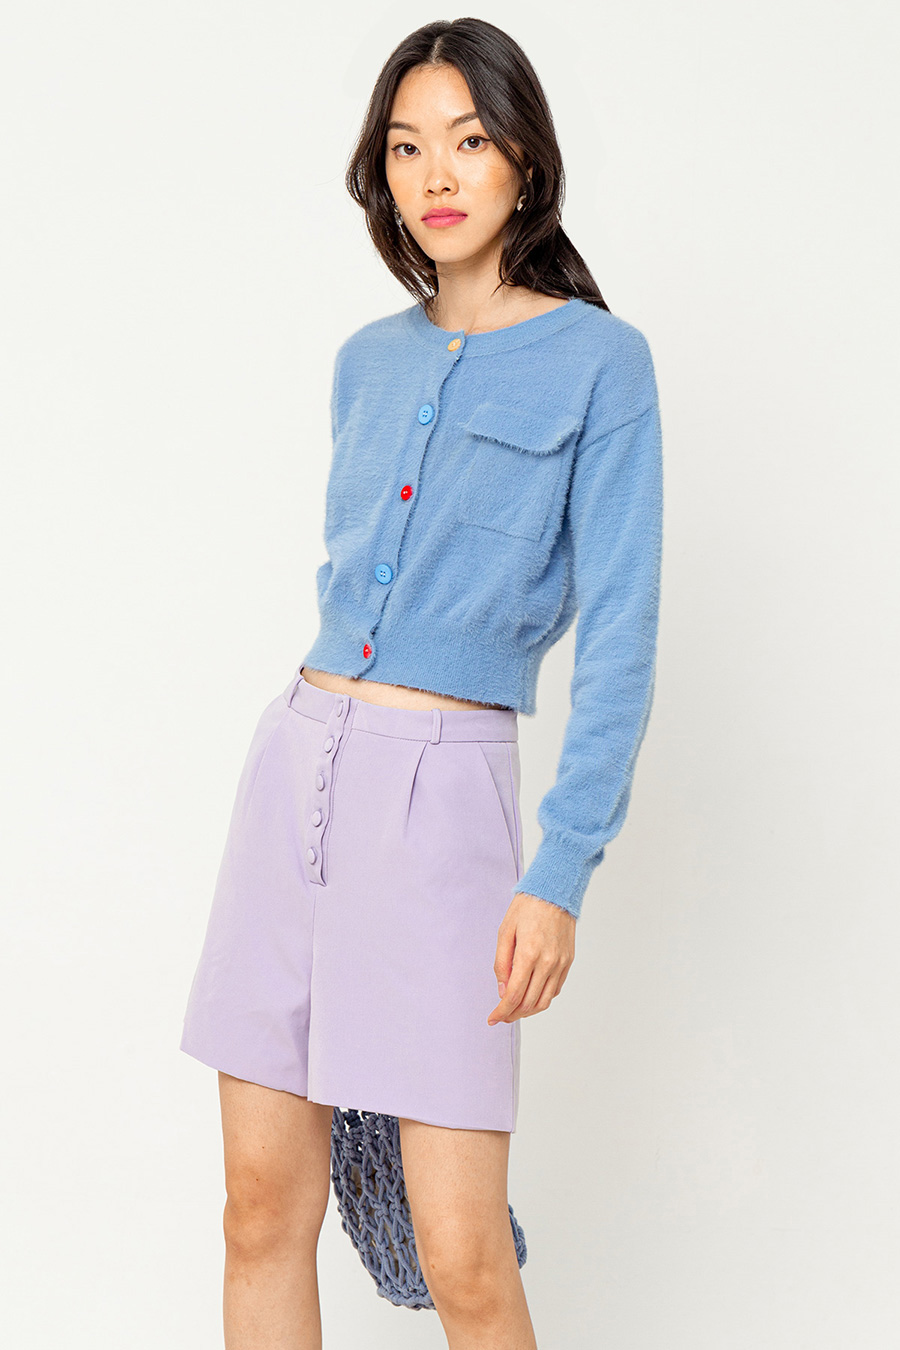 *SALE* GRIFFY SHORTS - LAVENDER